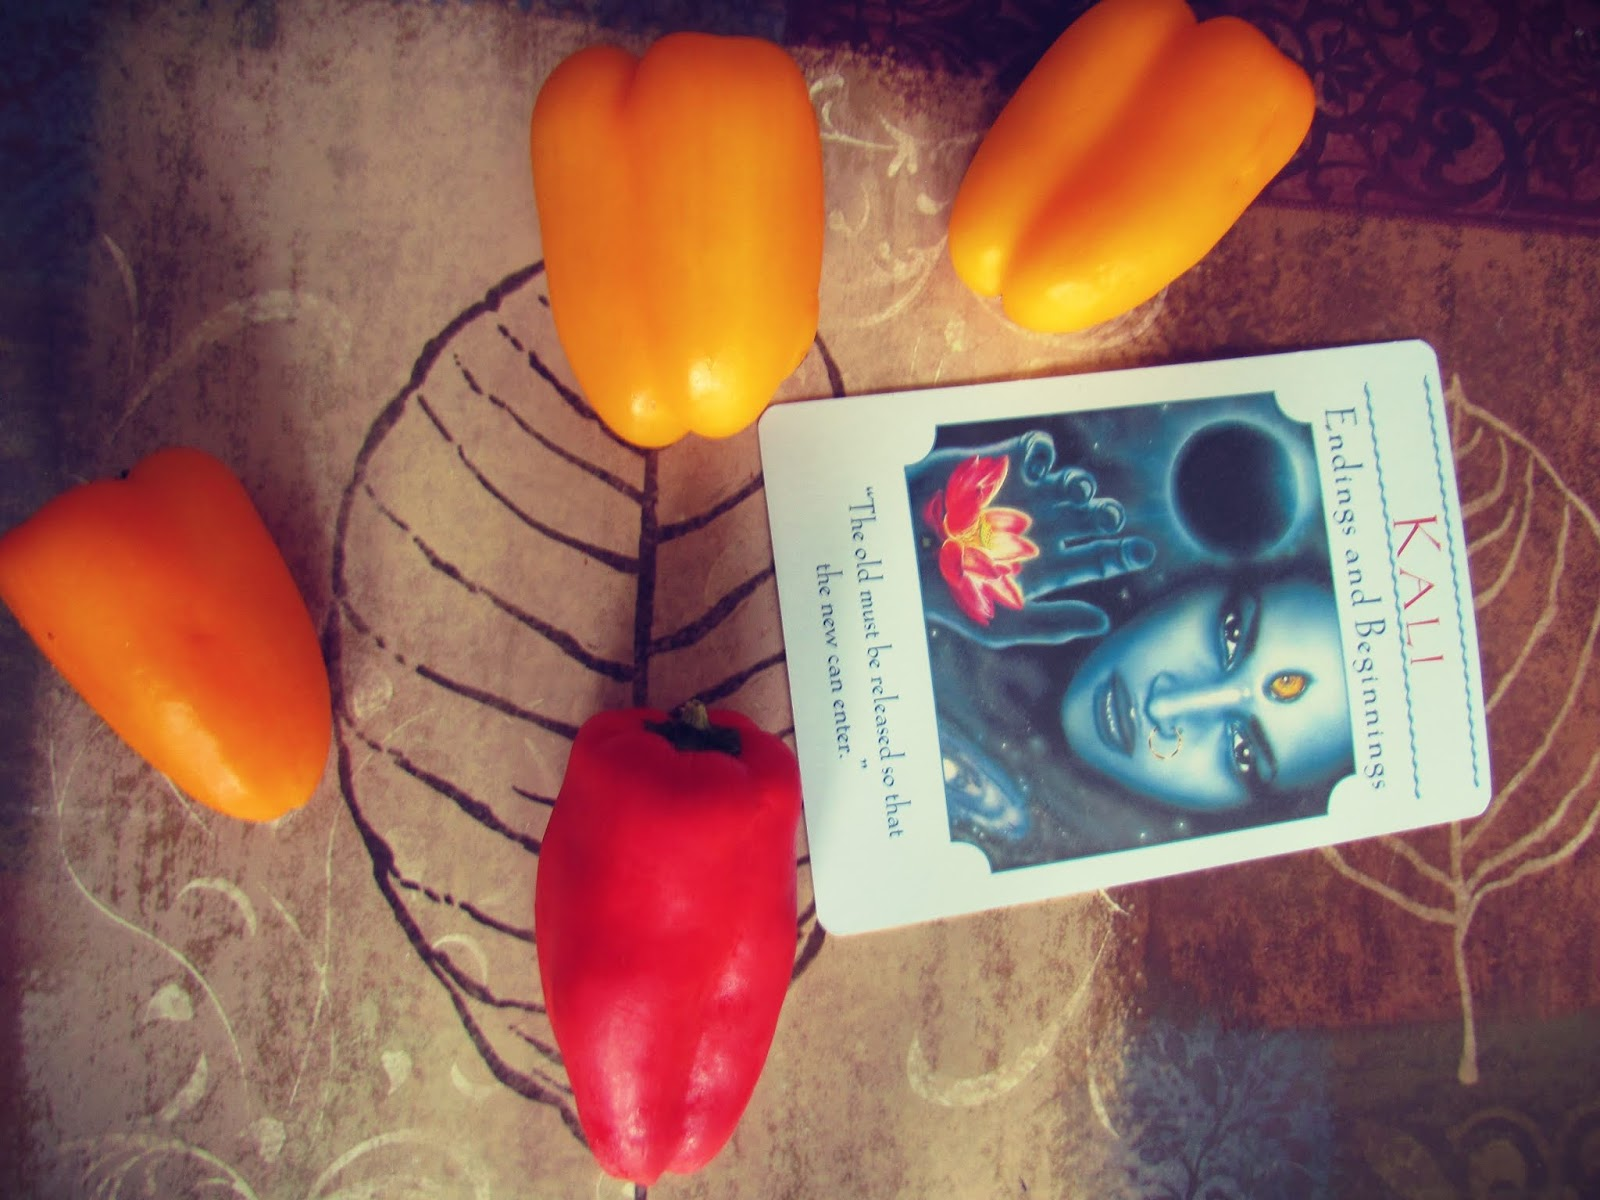 The Goddess Kali Endings and New Beginnings Card + Sweet Peppers